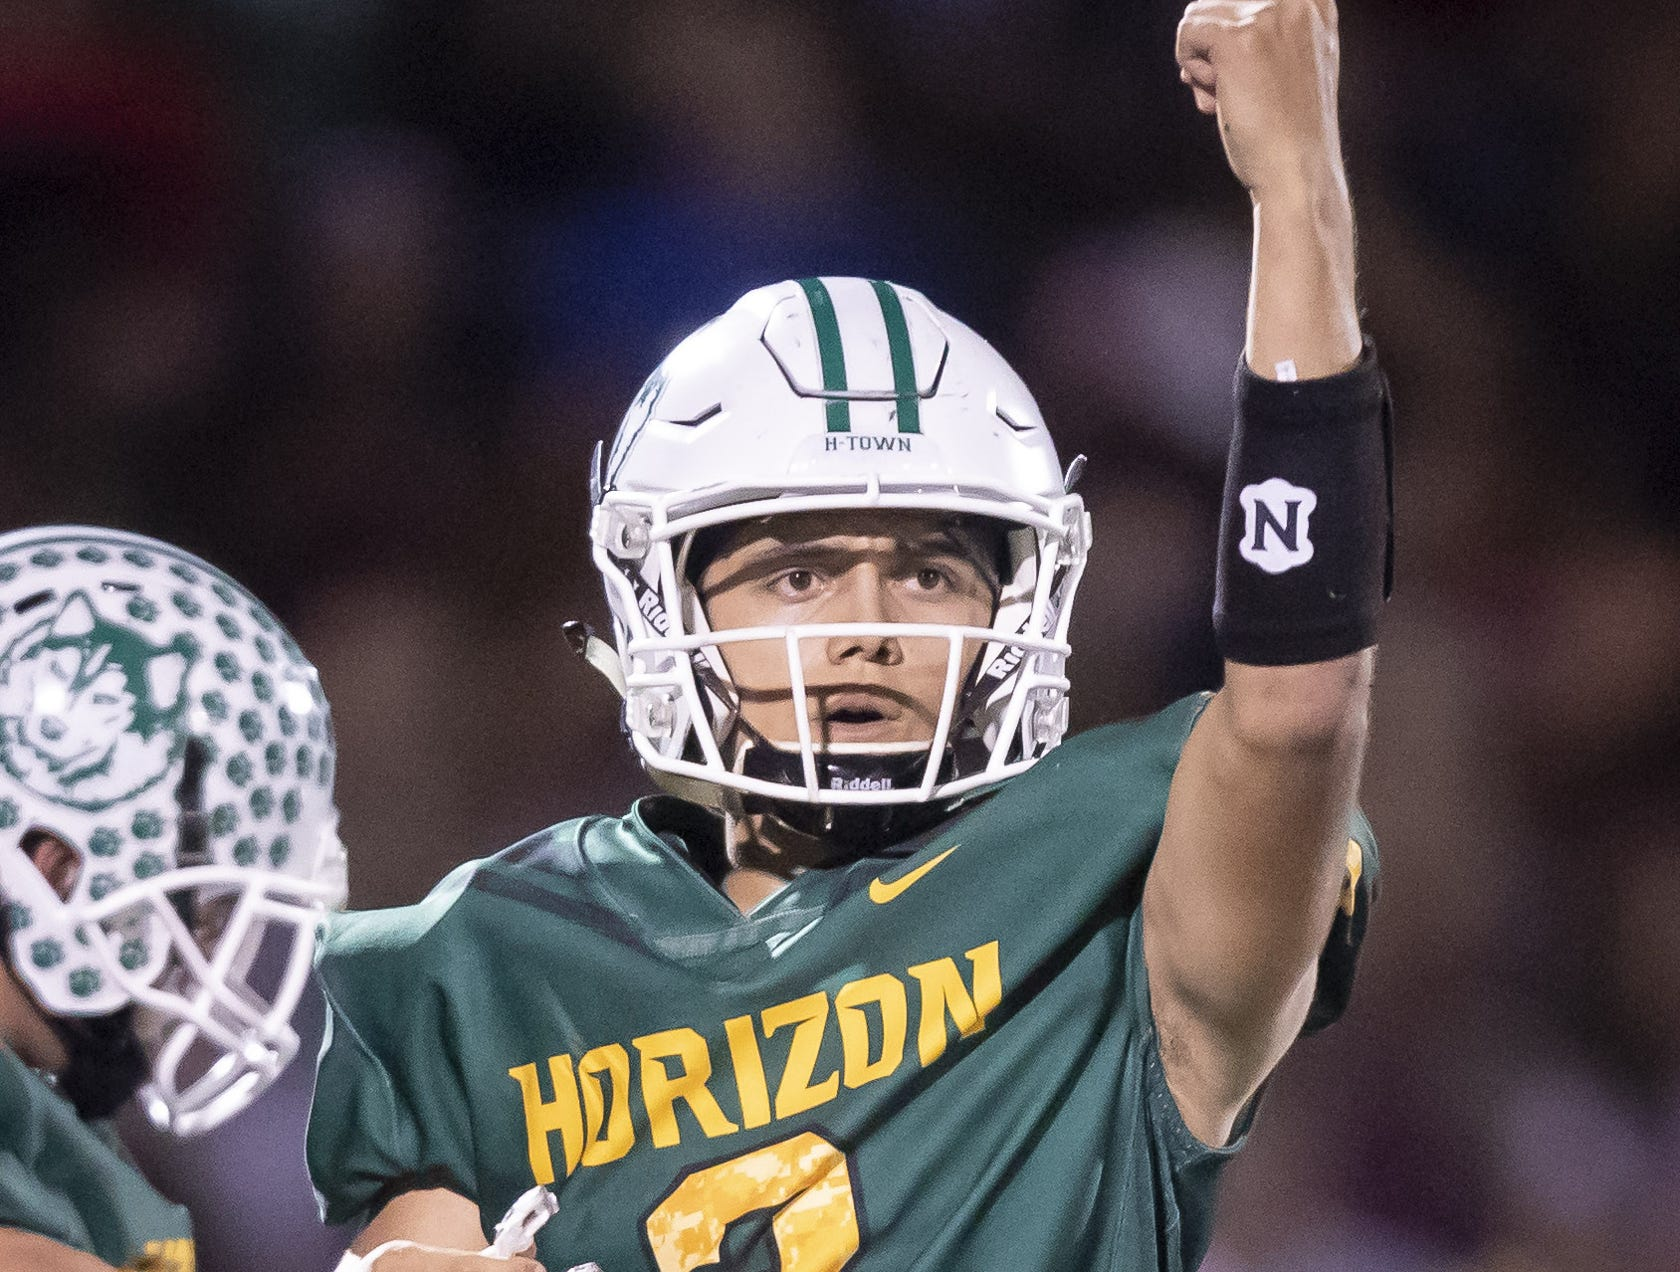 Senior quarterback Isaac Enriquez (3) of the Horizon Huskies motions during the game against the Notre Dame Prep Saints at Horizon High School on Friday, October 5, 2018 in Scottsdale, Arizona. #azhsfb